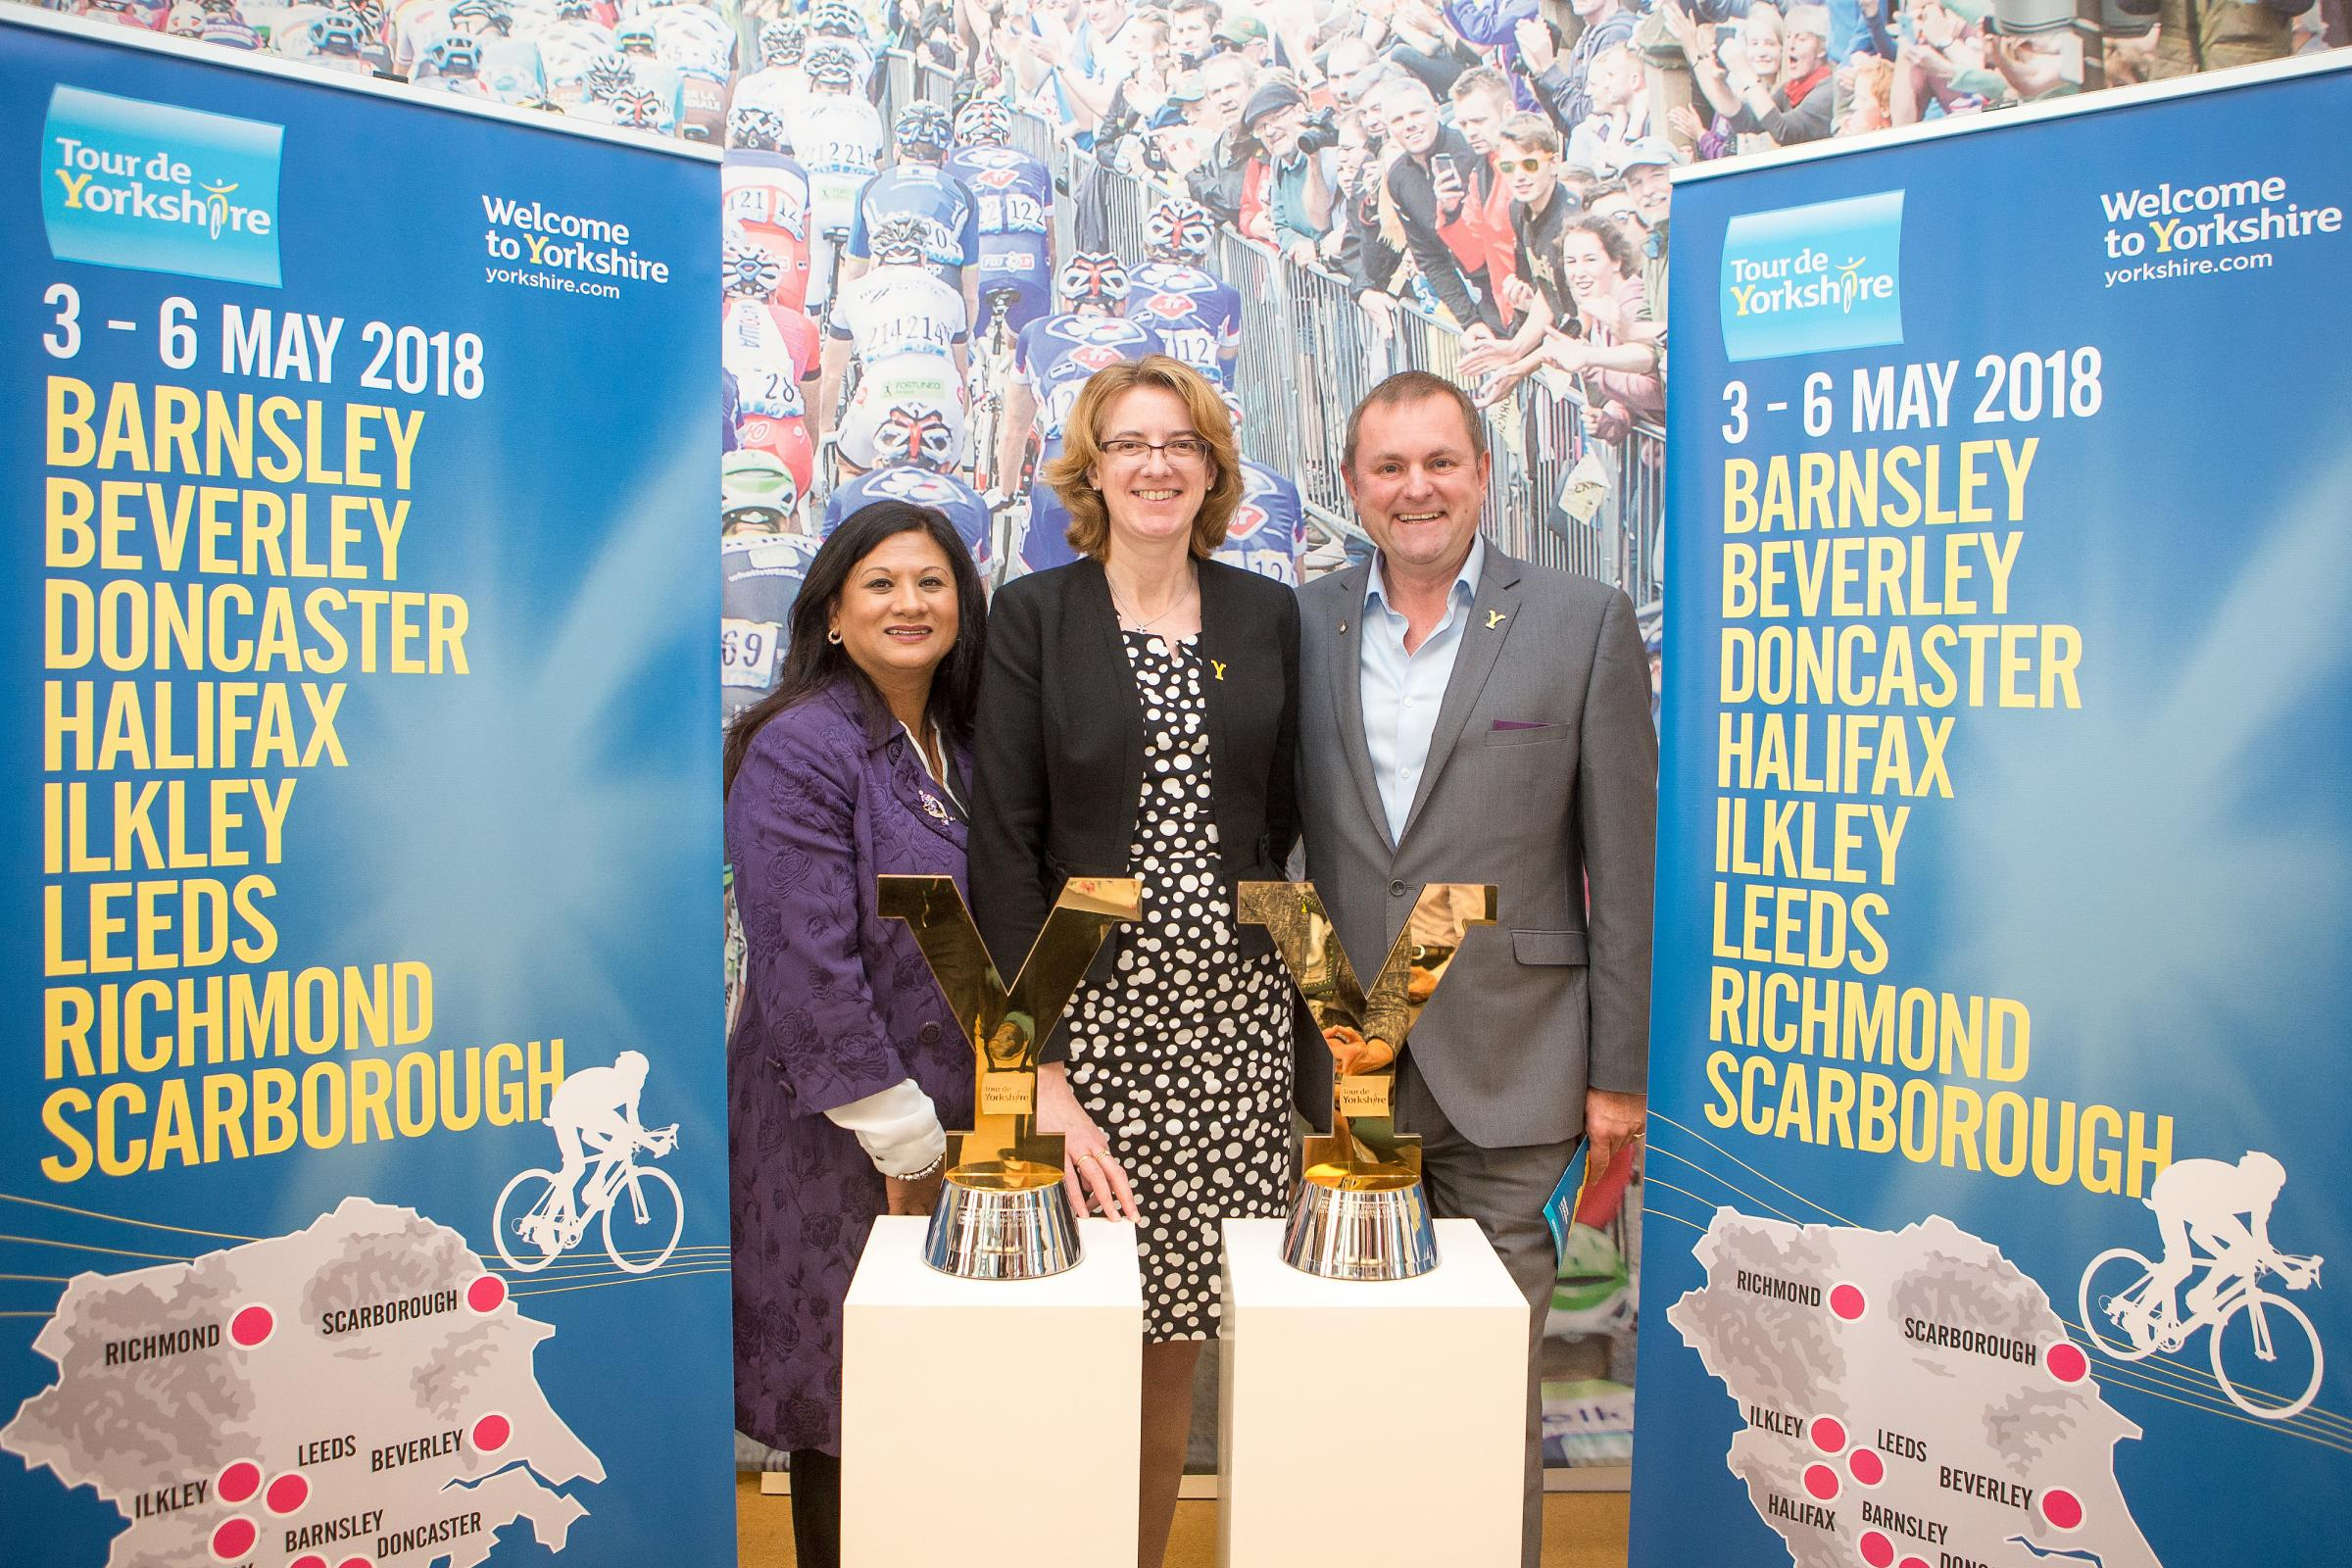 Zuby Hamard, Bradford Council's sports & physical activity manager, and council leader Susan Hinchcliffe with Welcome To Yorkshire's Sir Gary Verity.